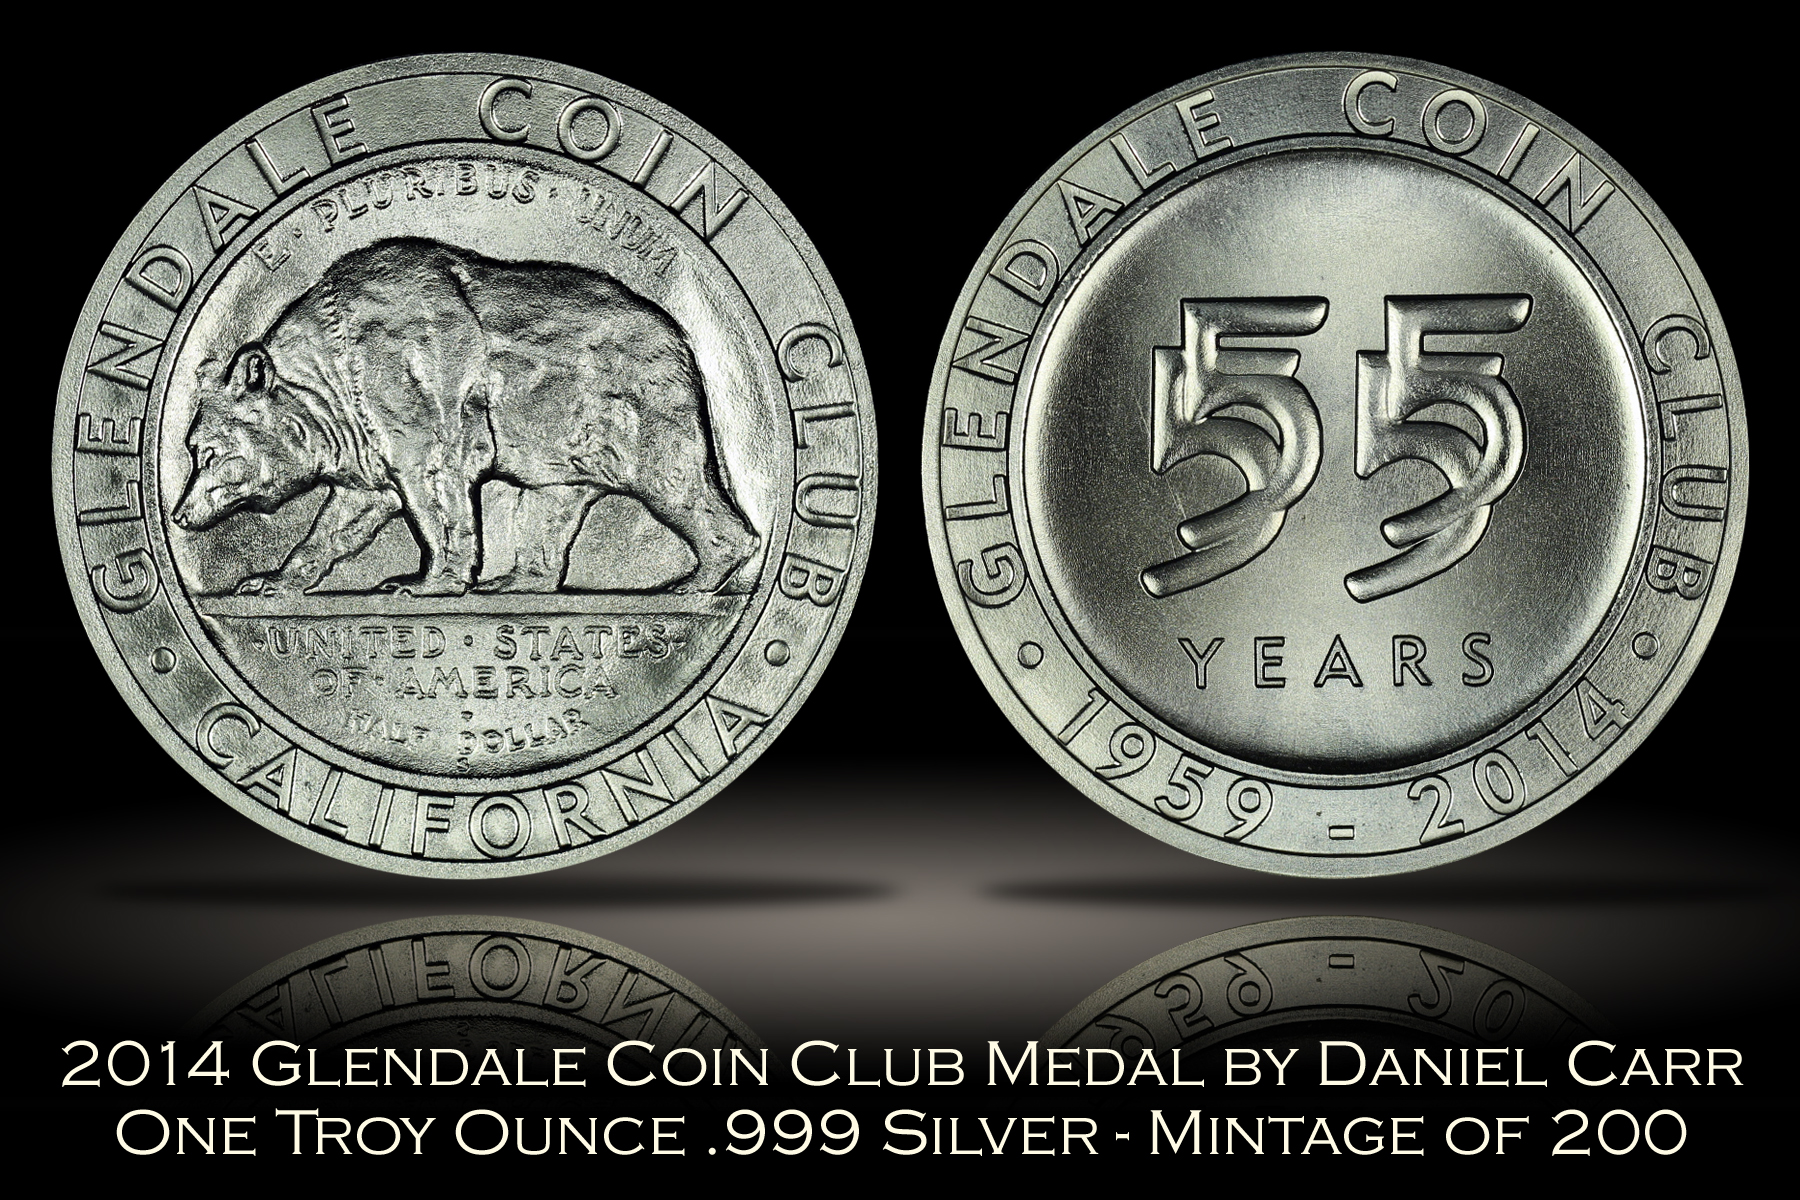 2014 Glendale Coin Club Silver Medal by Daniel Carr